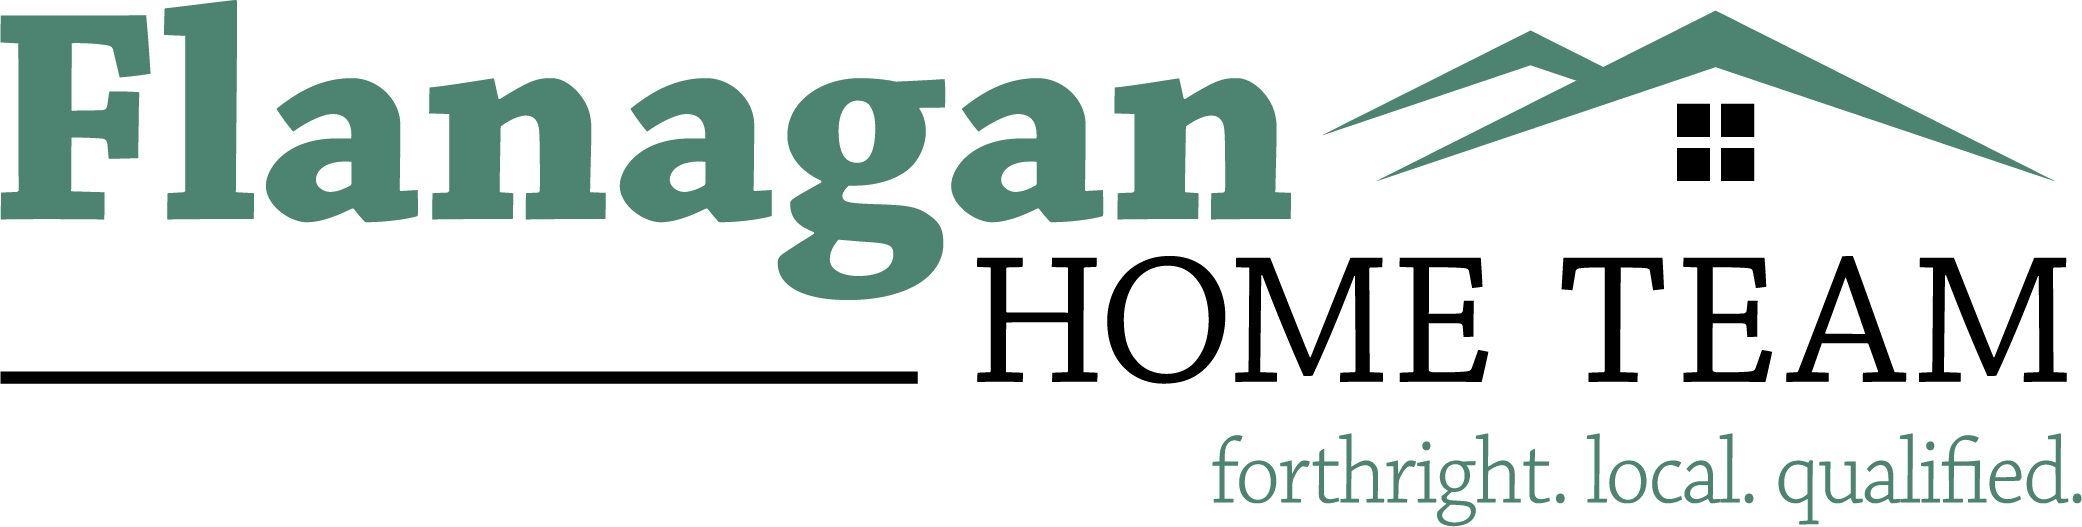 Flanagan Home Team LLC logo